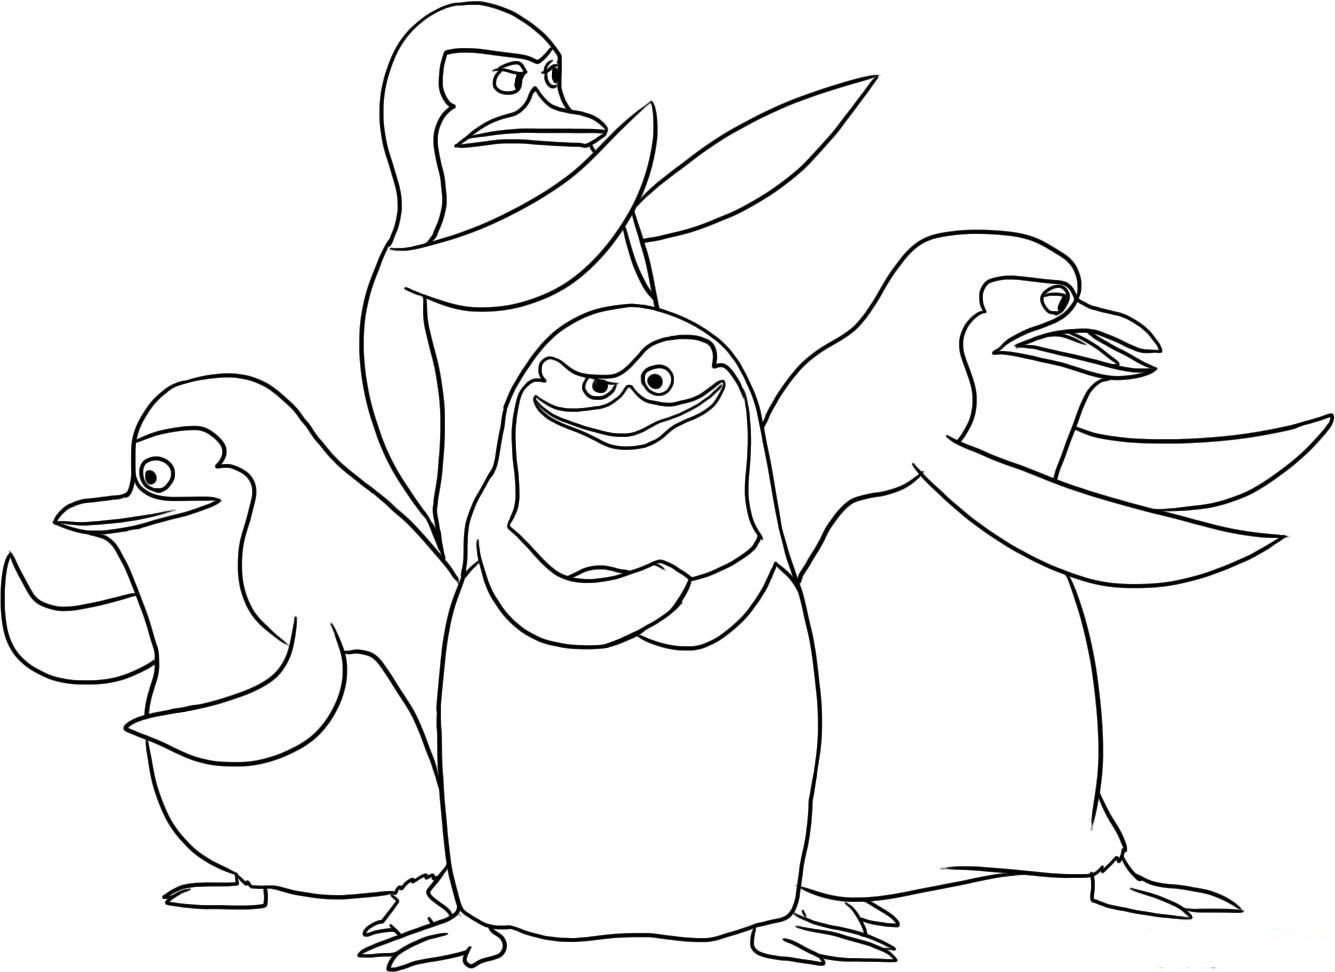 1335x972 Penguins Of Madagascar Coloring Pages